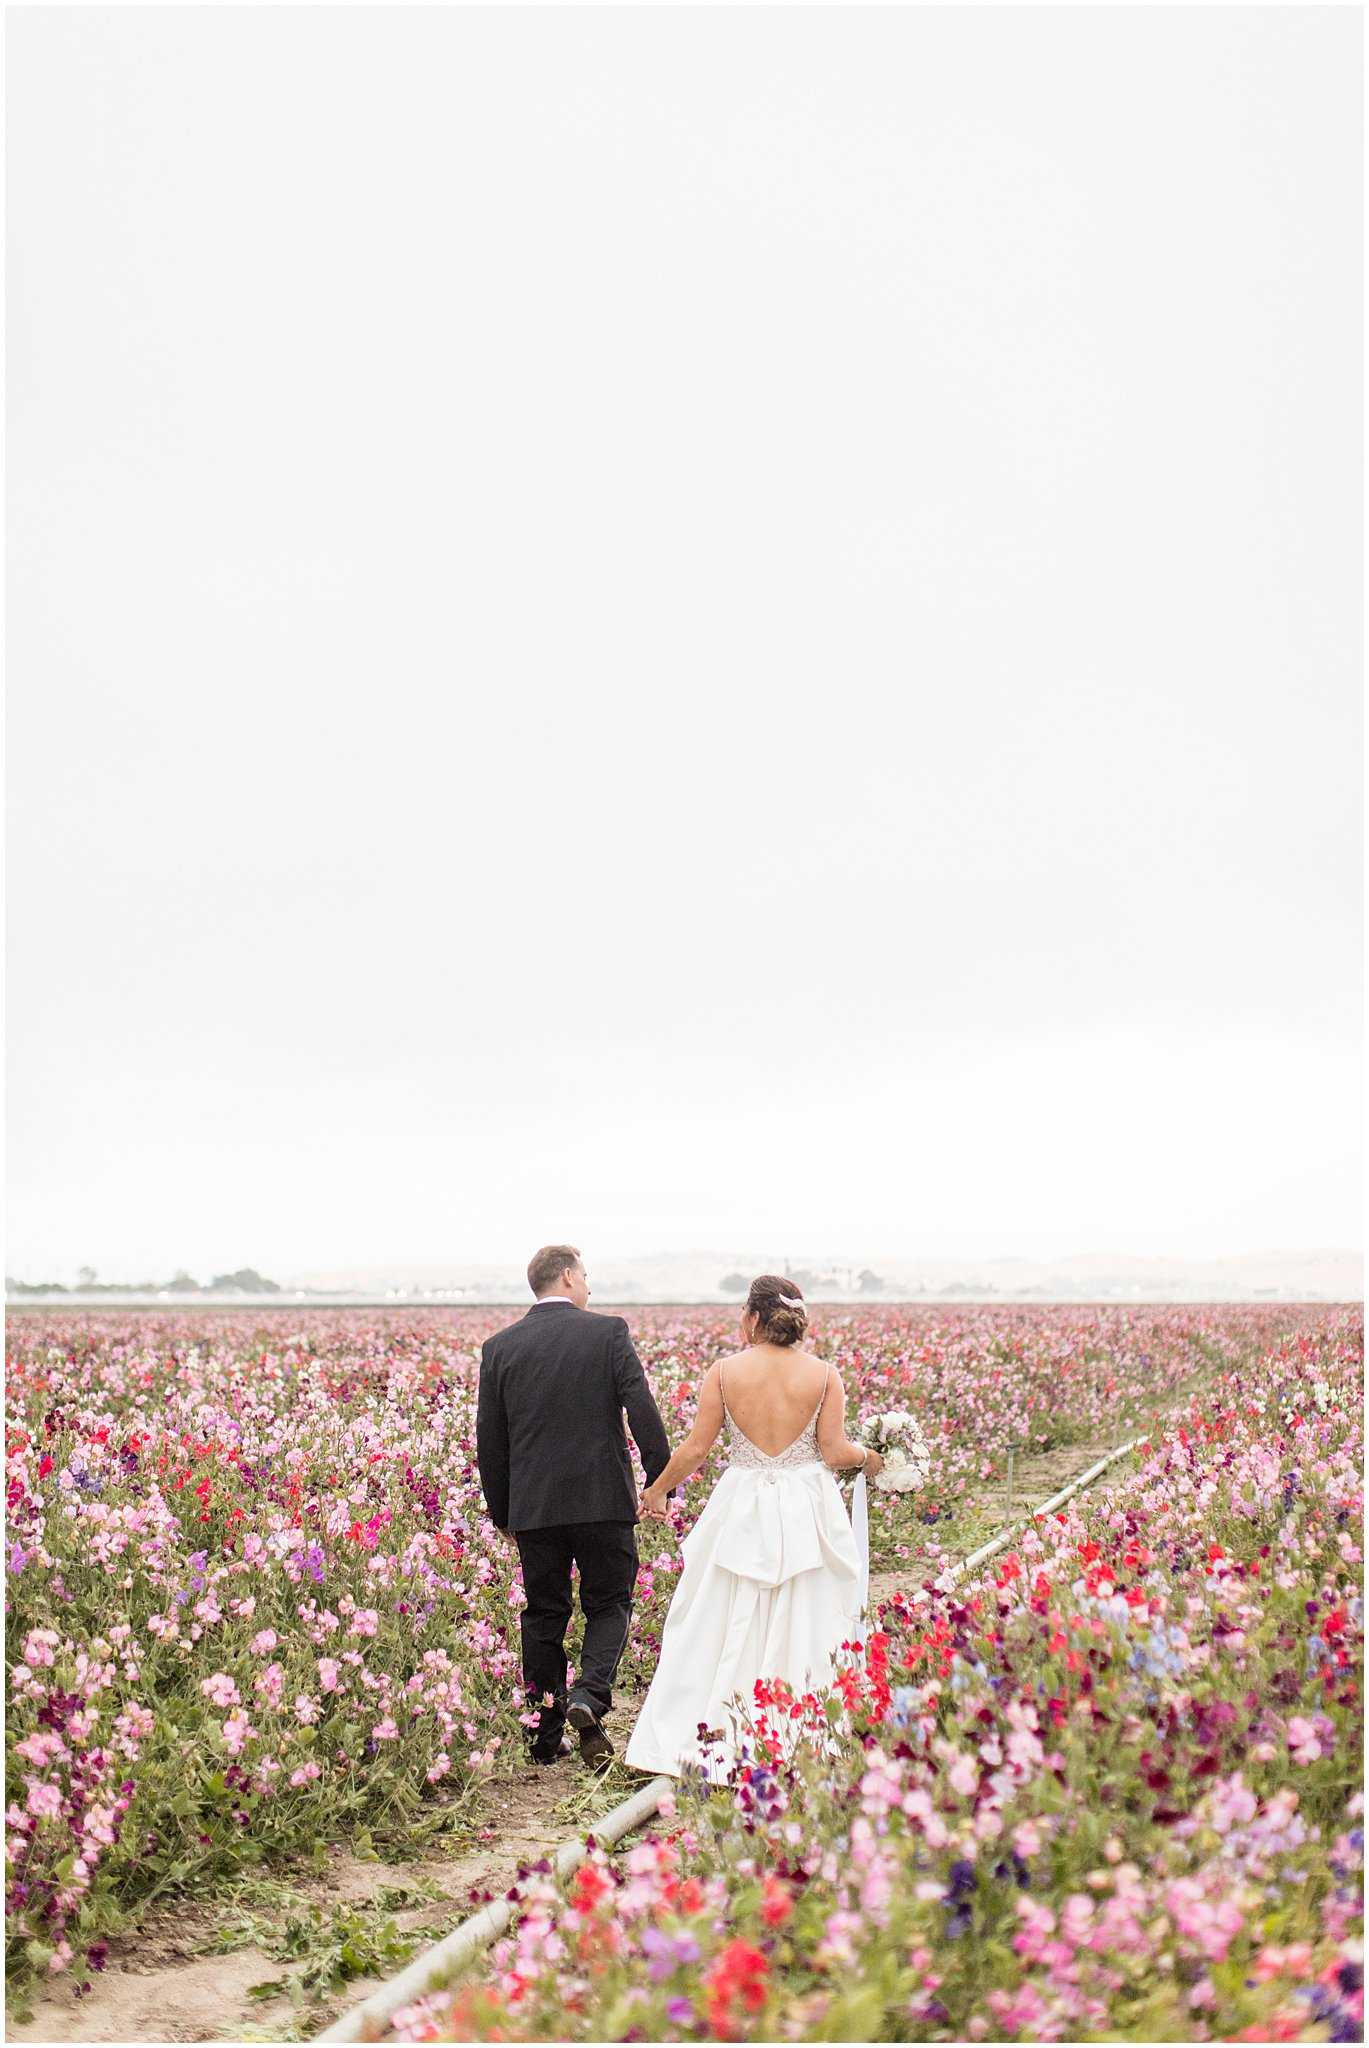 2019 wedding san juan bautista hacienda de leal vineyards bay area wedding photographer_0084.jpg